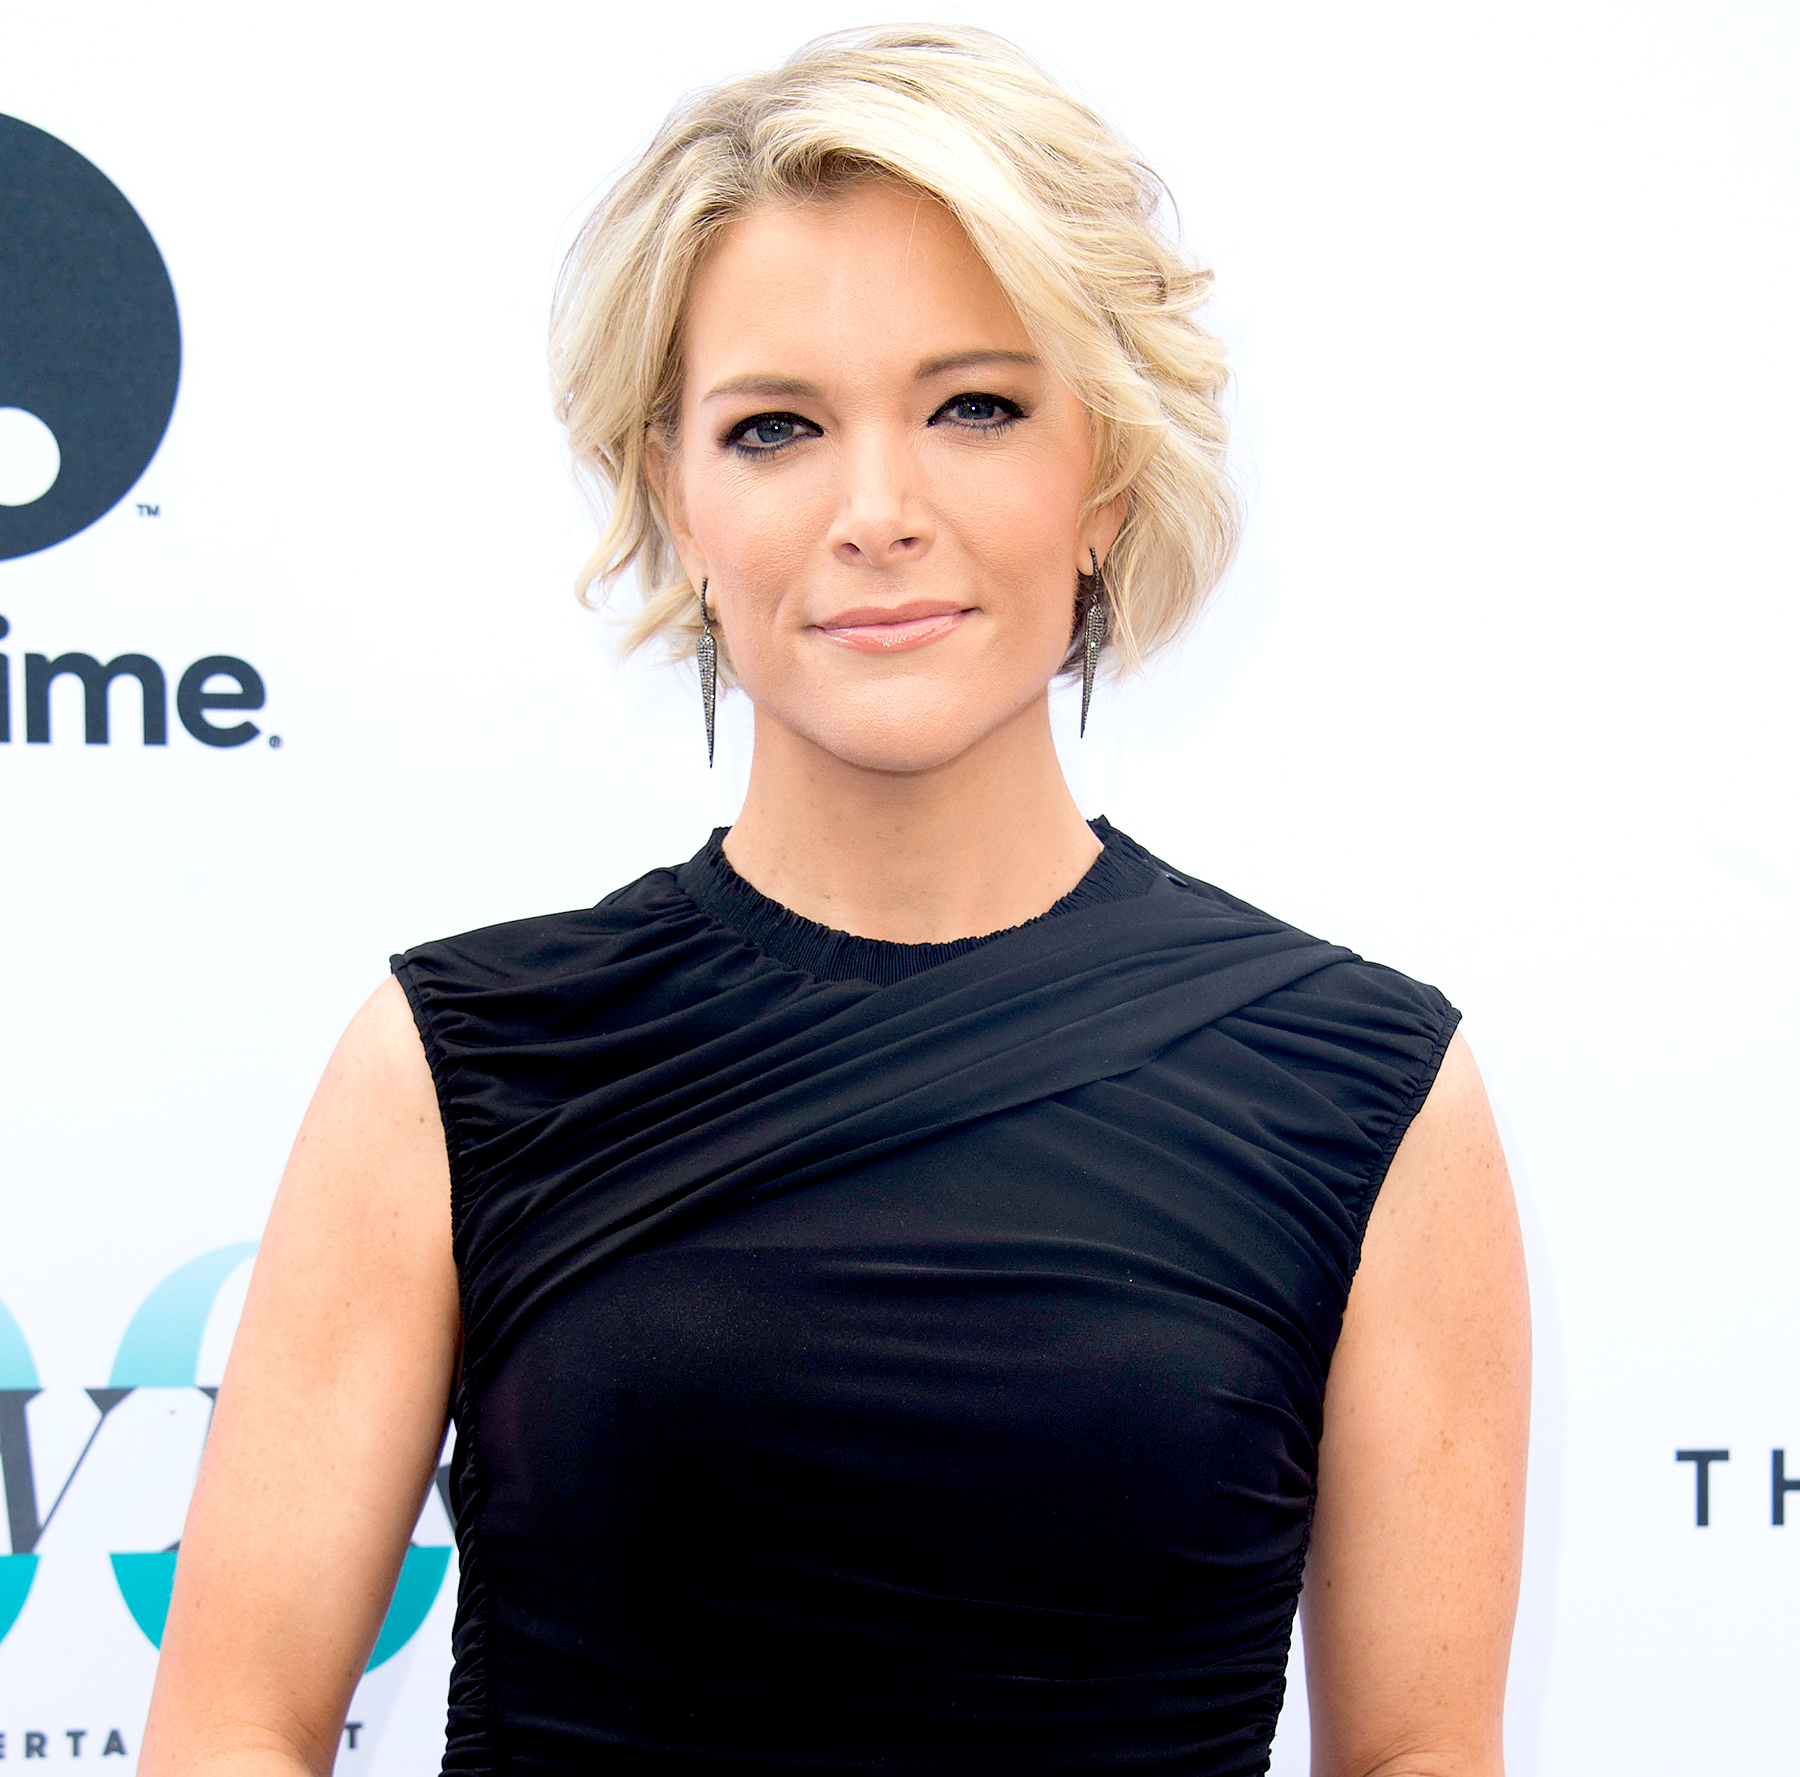 Megyn Kelly attends the Hollywood Reporter's 25th Annual Women in Entertainment Breakfast on December 7, 2016 in Los Angeles, California.